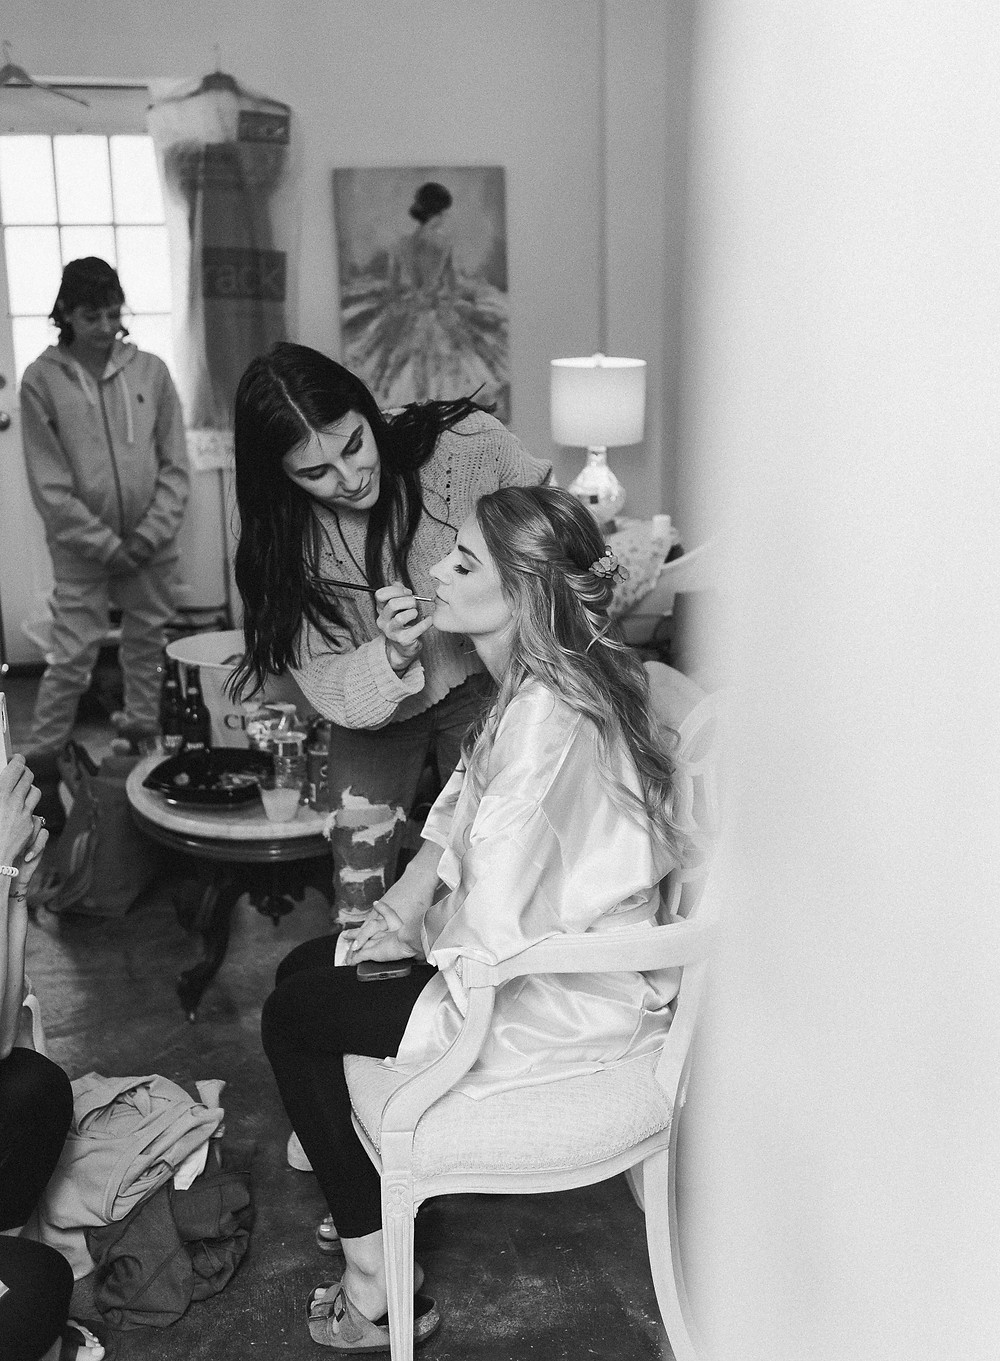 Black and white portrait of the bride getting ready.